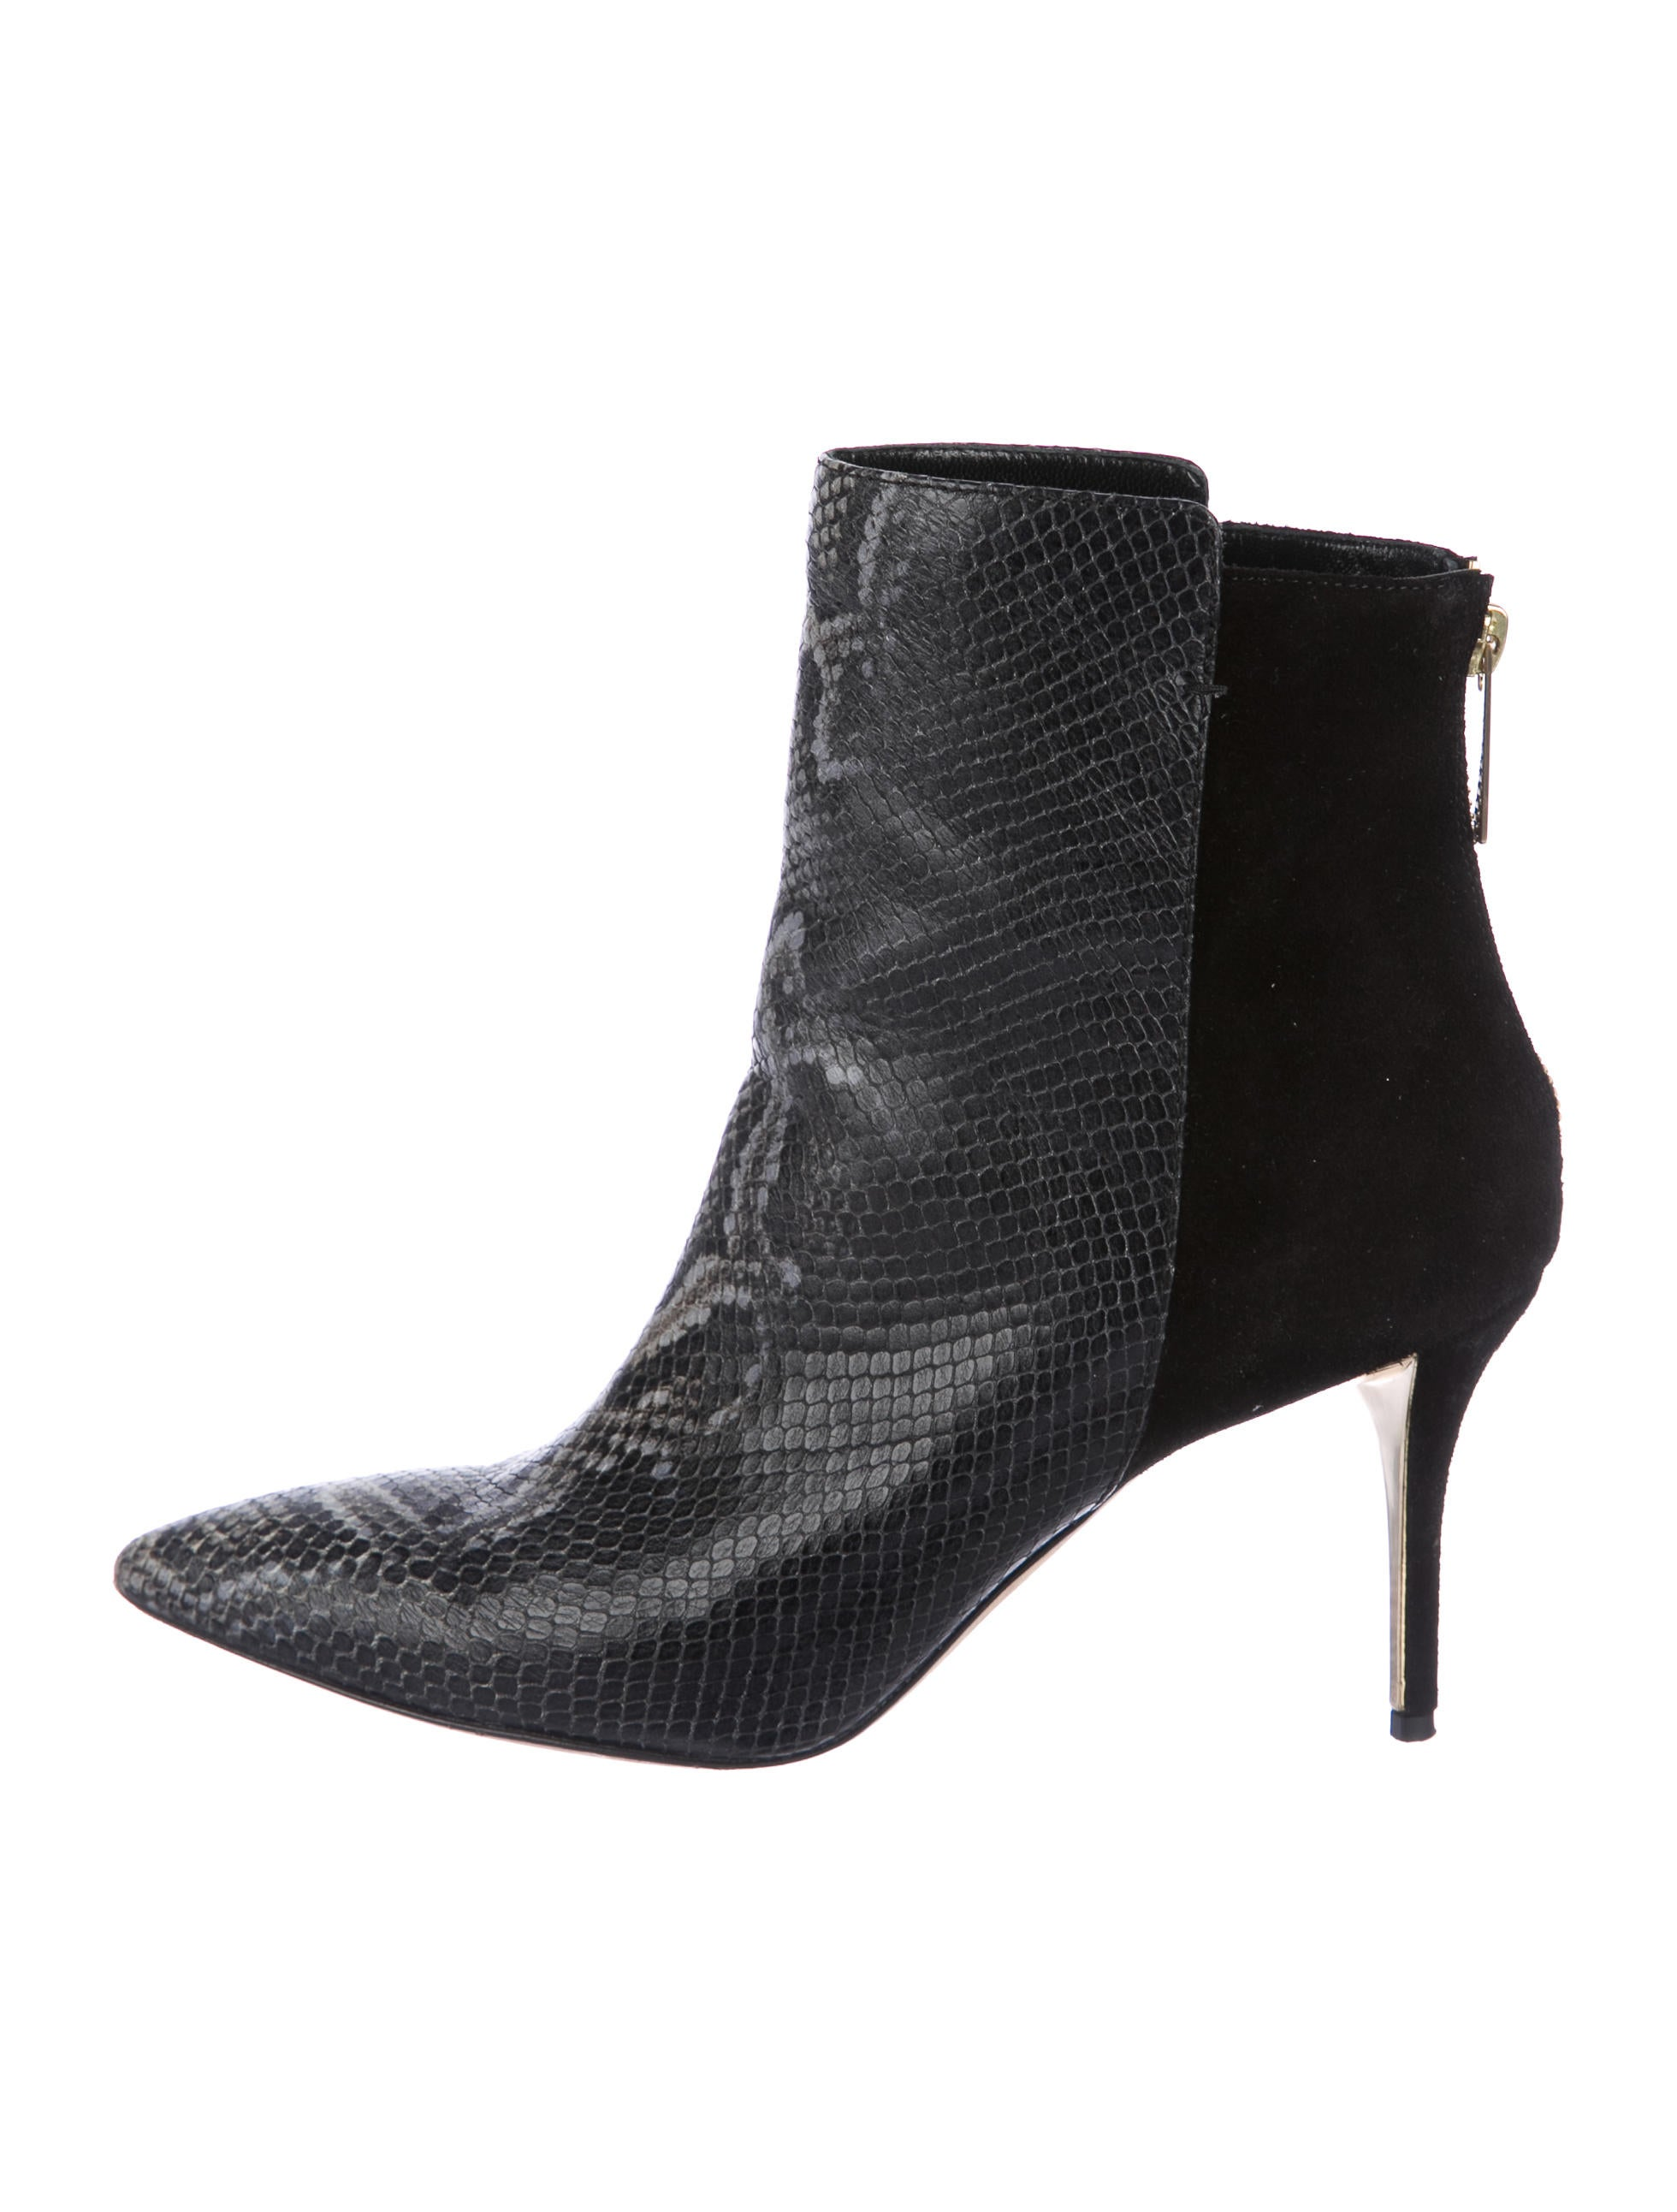 Oscar de la Renta Leather Embossed Ankle Boots buy cheap pay with visa discounts sale online oK0Ehoh